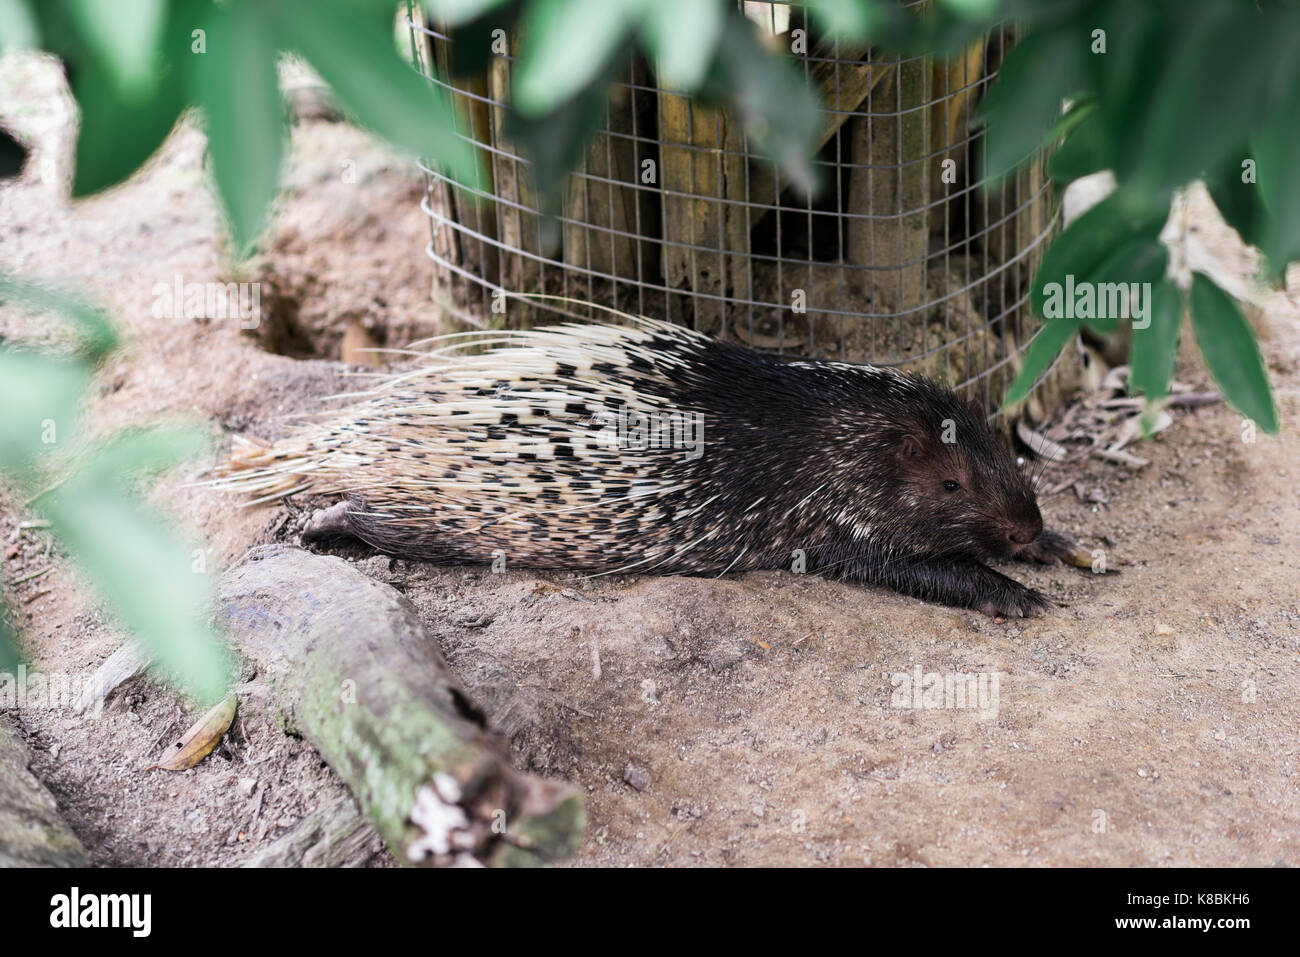 Photo of an animal called Malayan Porcupine - Scientific name - Hystrix Brachyura (Selective Focus) - Stock Image